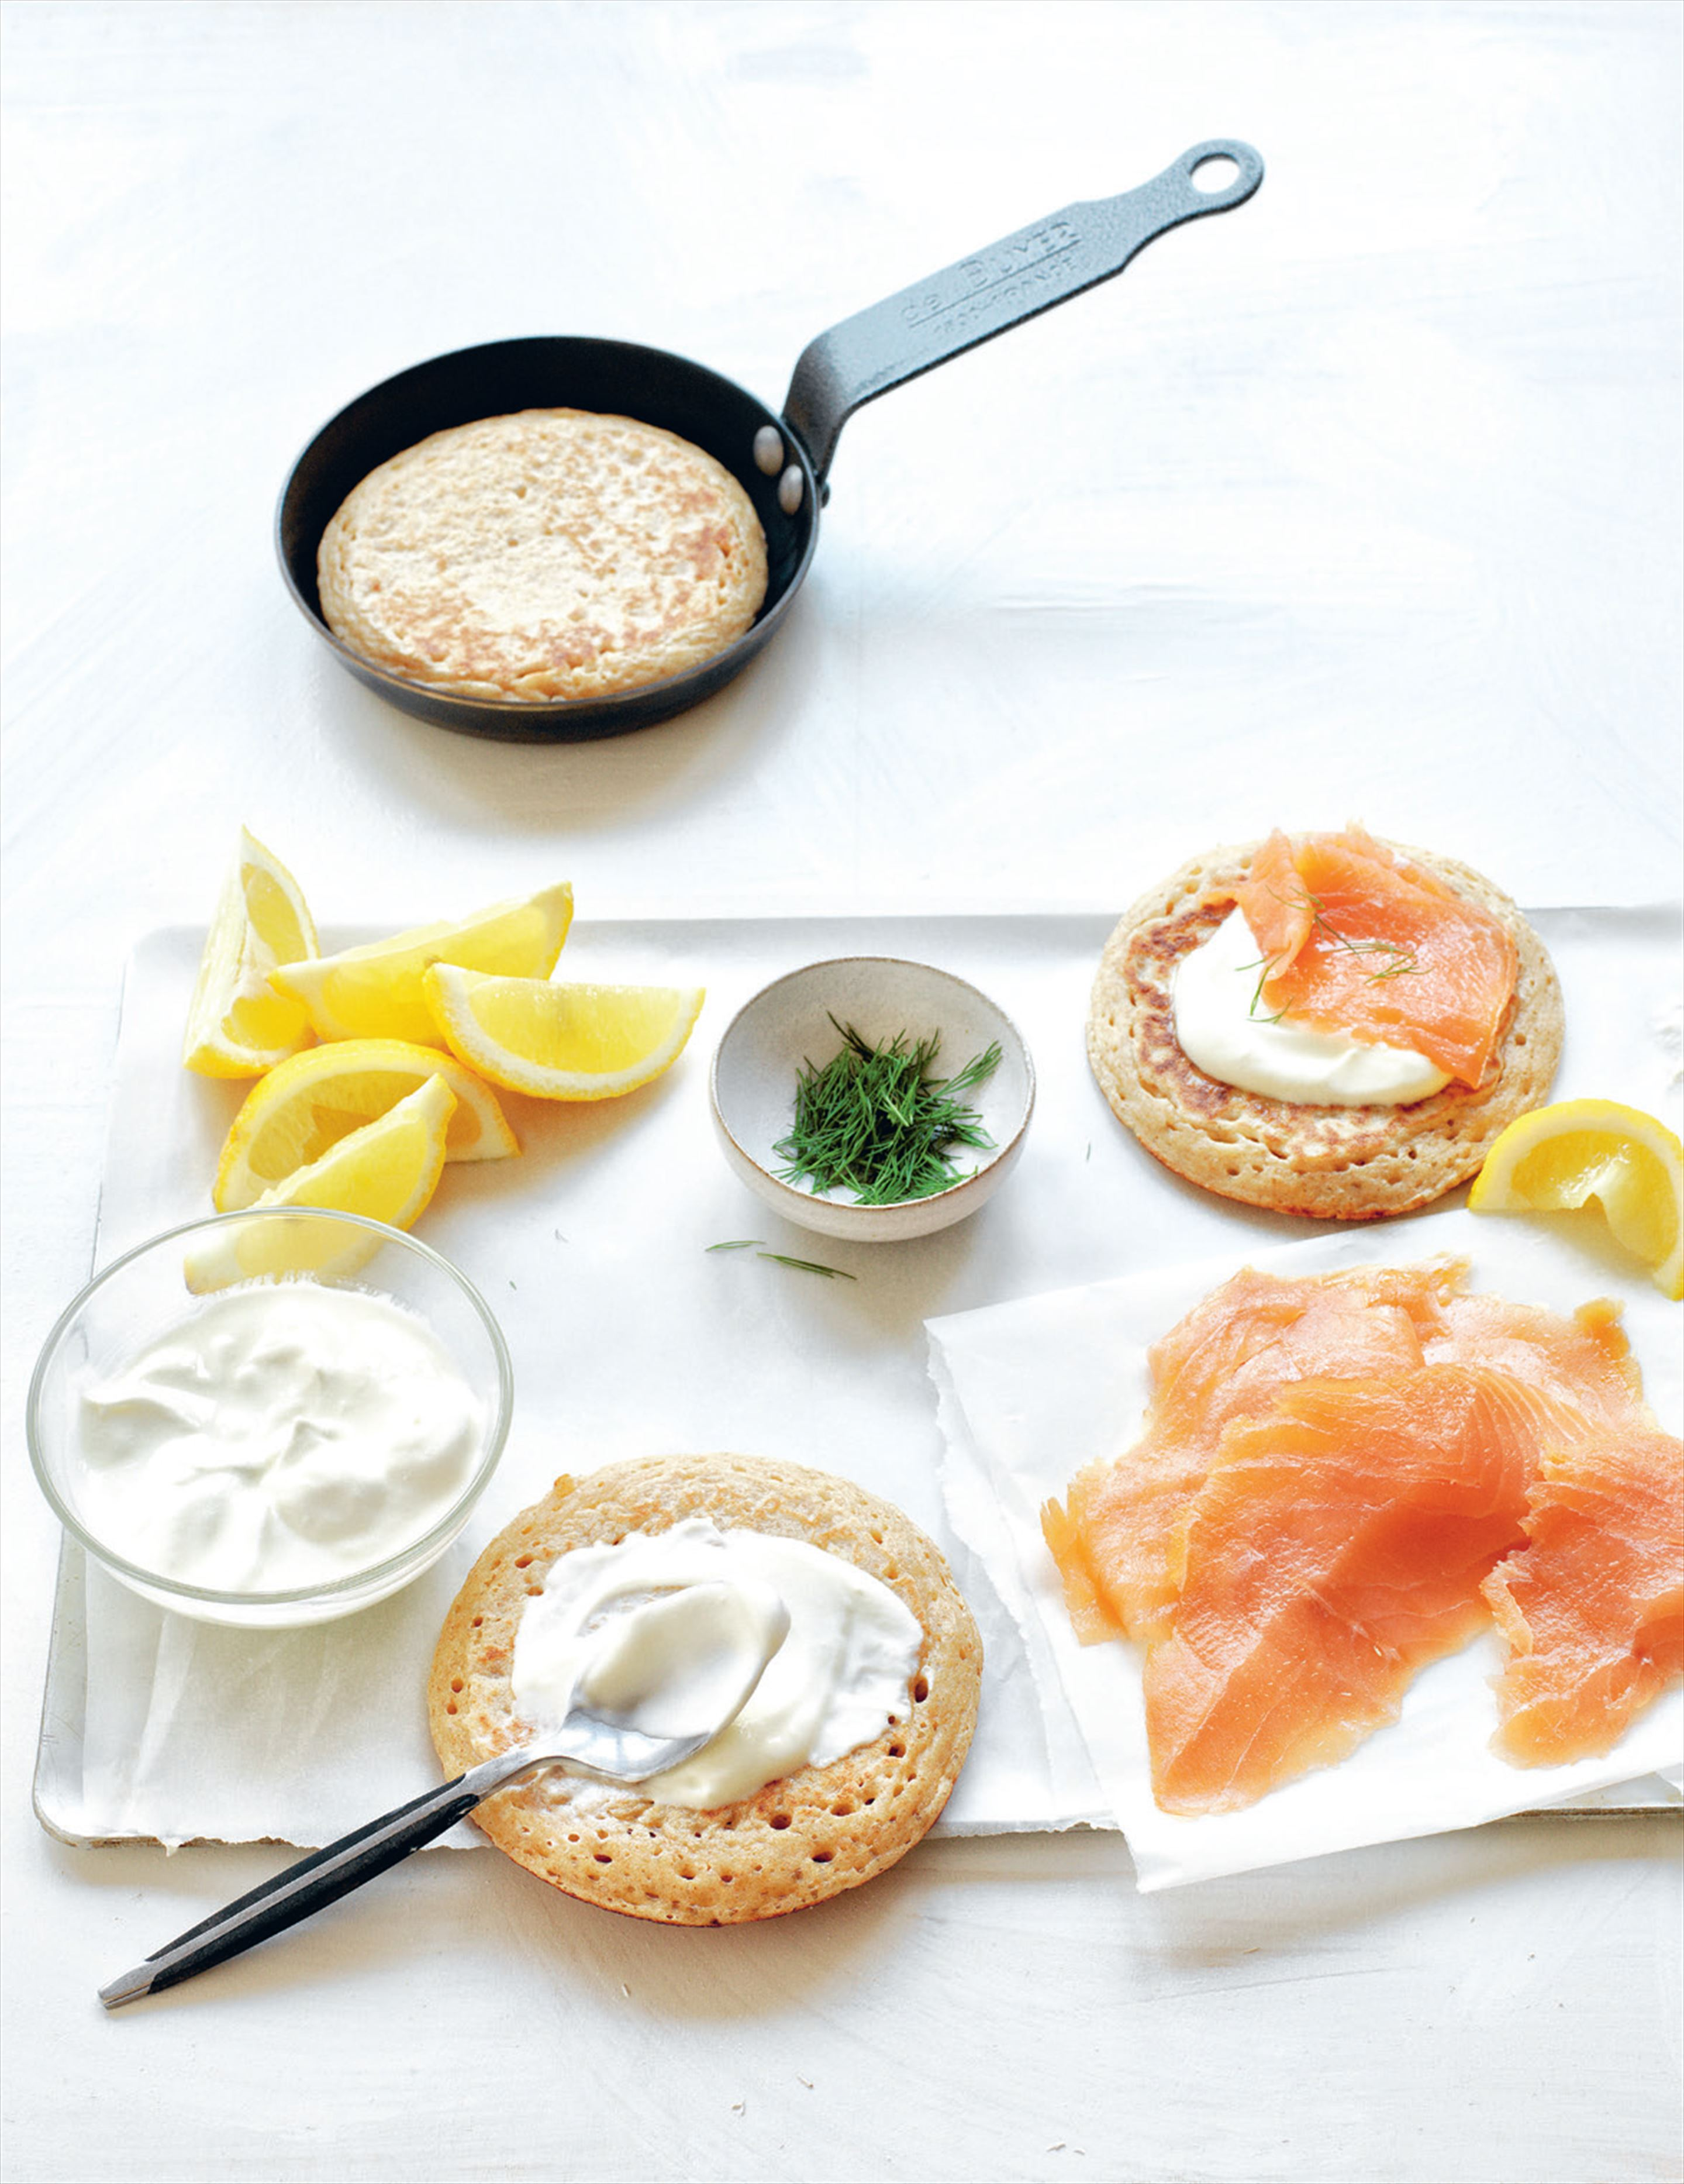 Buckwheat blini with yoghurt & smoked salmon